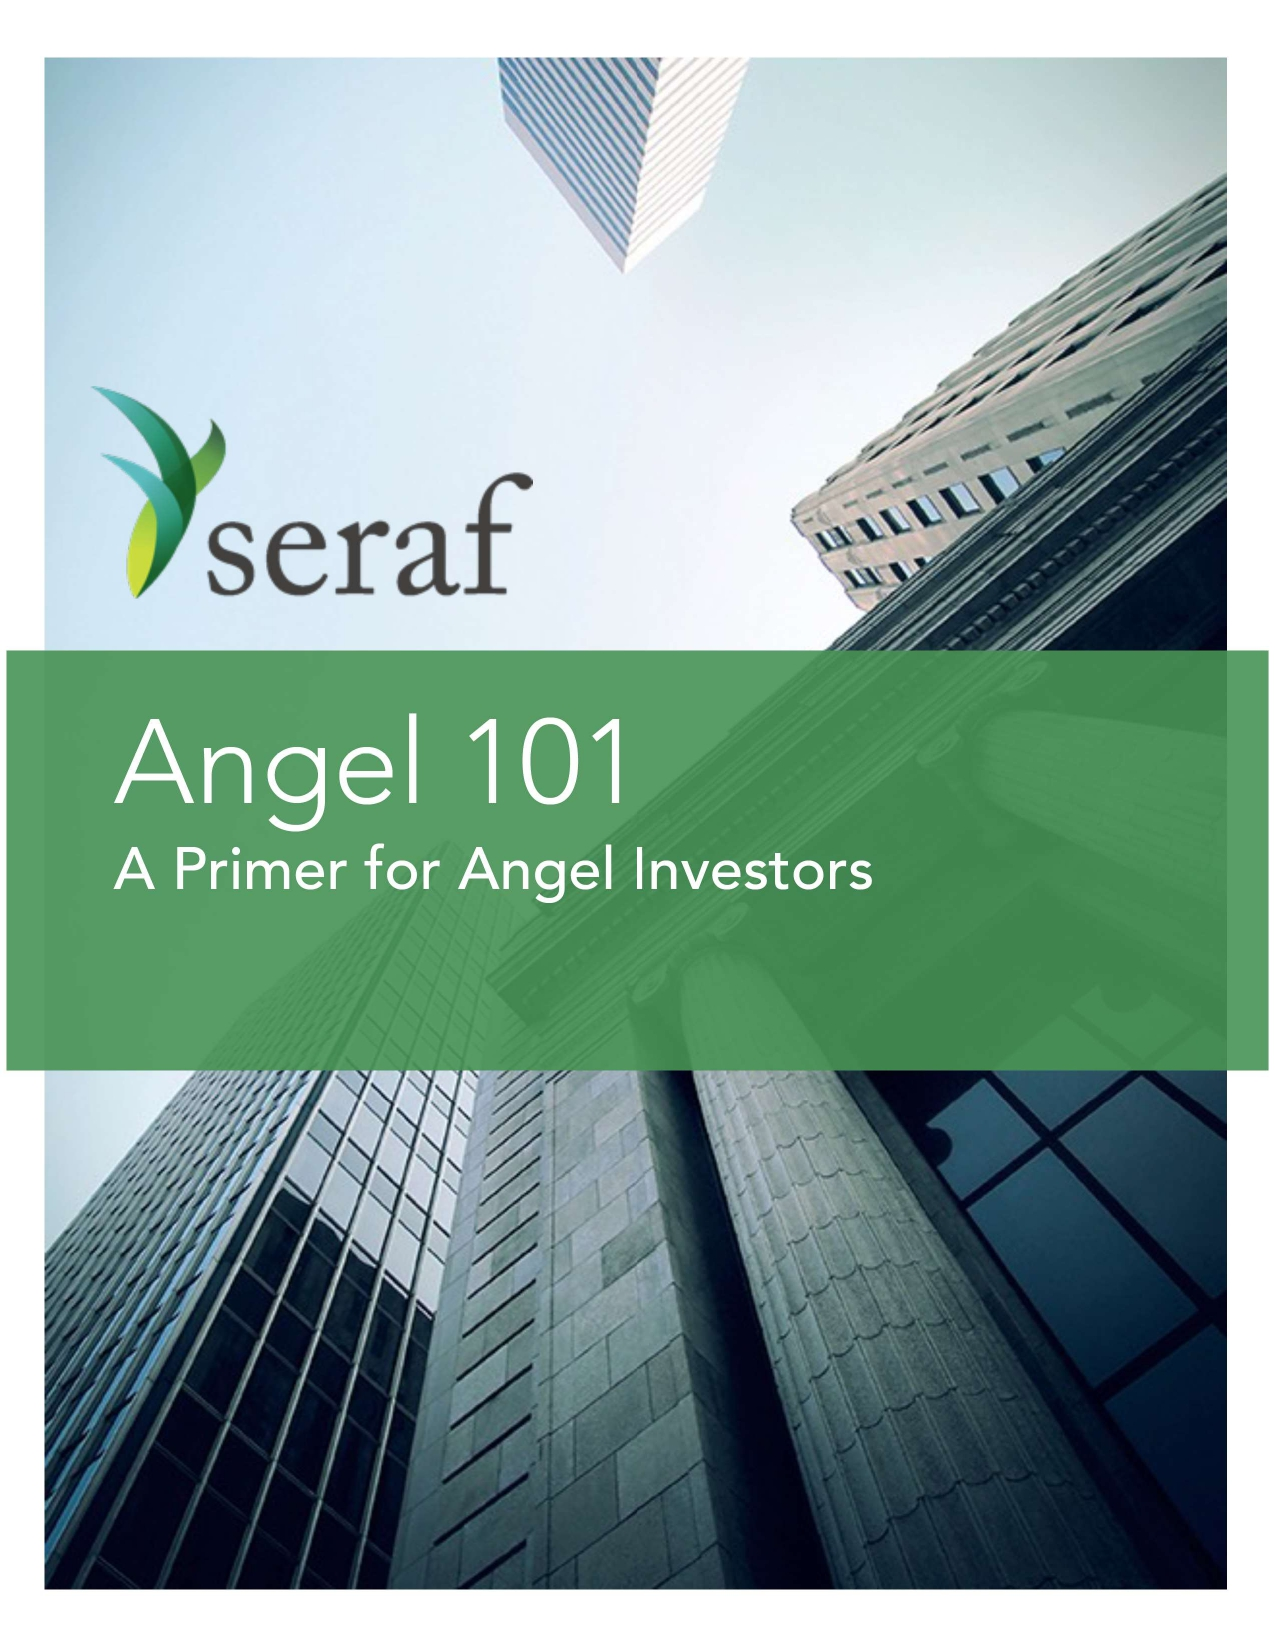 A primer for Angel Investors